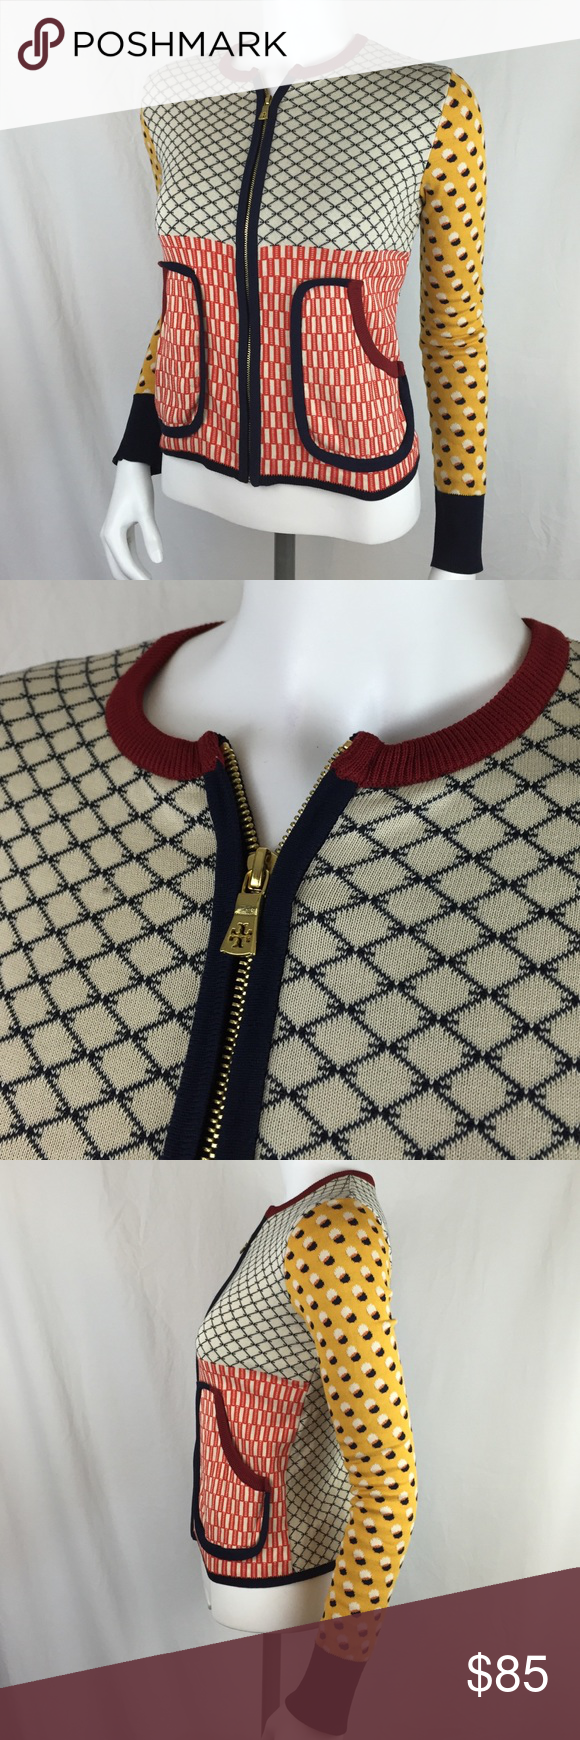 """Tory Burch Patterned Golden Zip Up Cardigan Jacket Amazing and unique Tory Burch Patterned Golden Zip Up Cardigan Jacket. Varied patterns throughout this awesome piece. Cute outlined pockets on the front and gold Tory Burch signature zipper. Size extra small in great condition. No damage or wear. Small mark on the back (hard to see, but picture above). This top is a beauty! 20.5"""" long and 15"""" across the chest Tory Burch Sweaters Cardigans"""